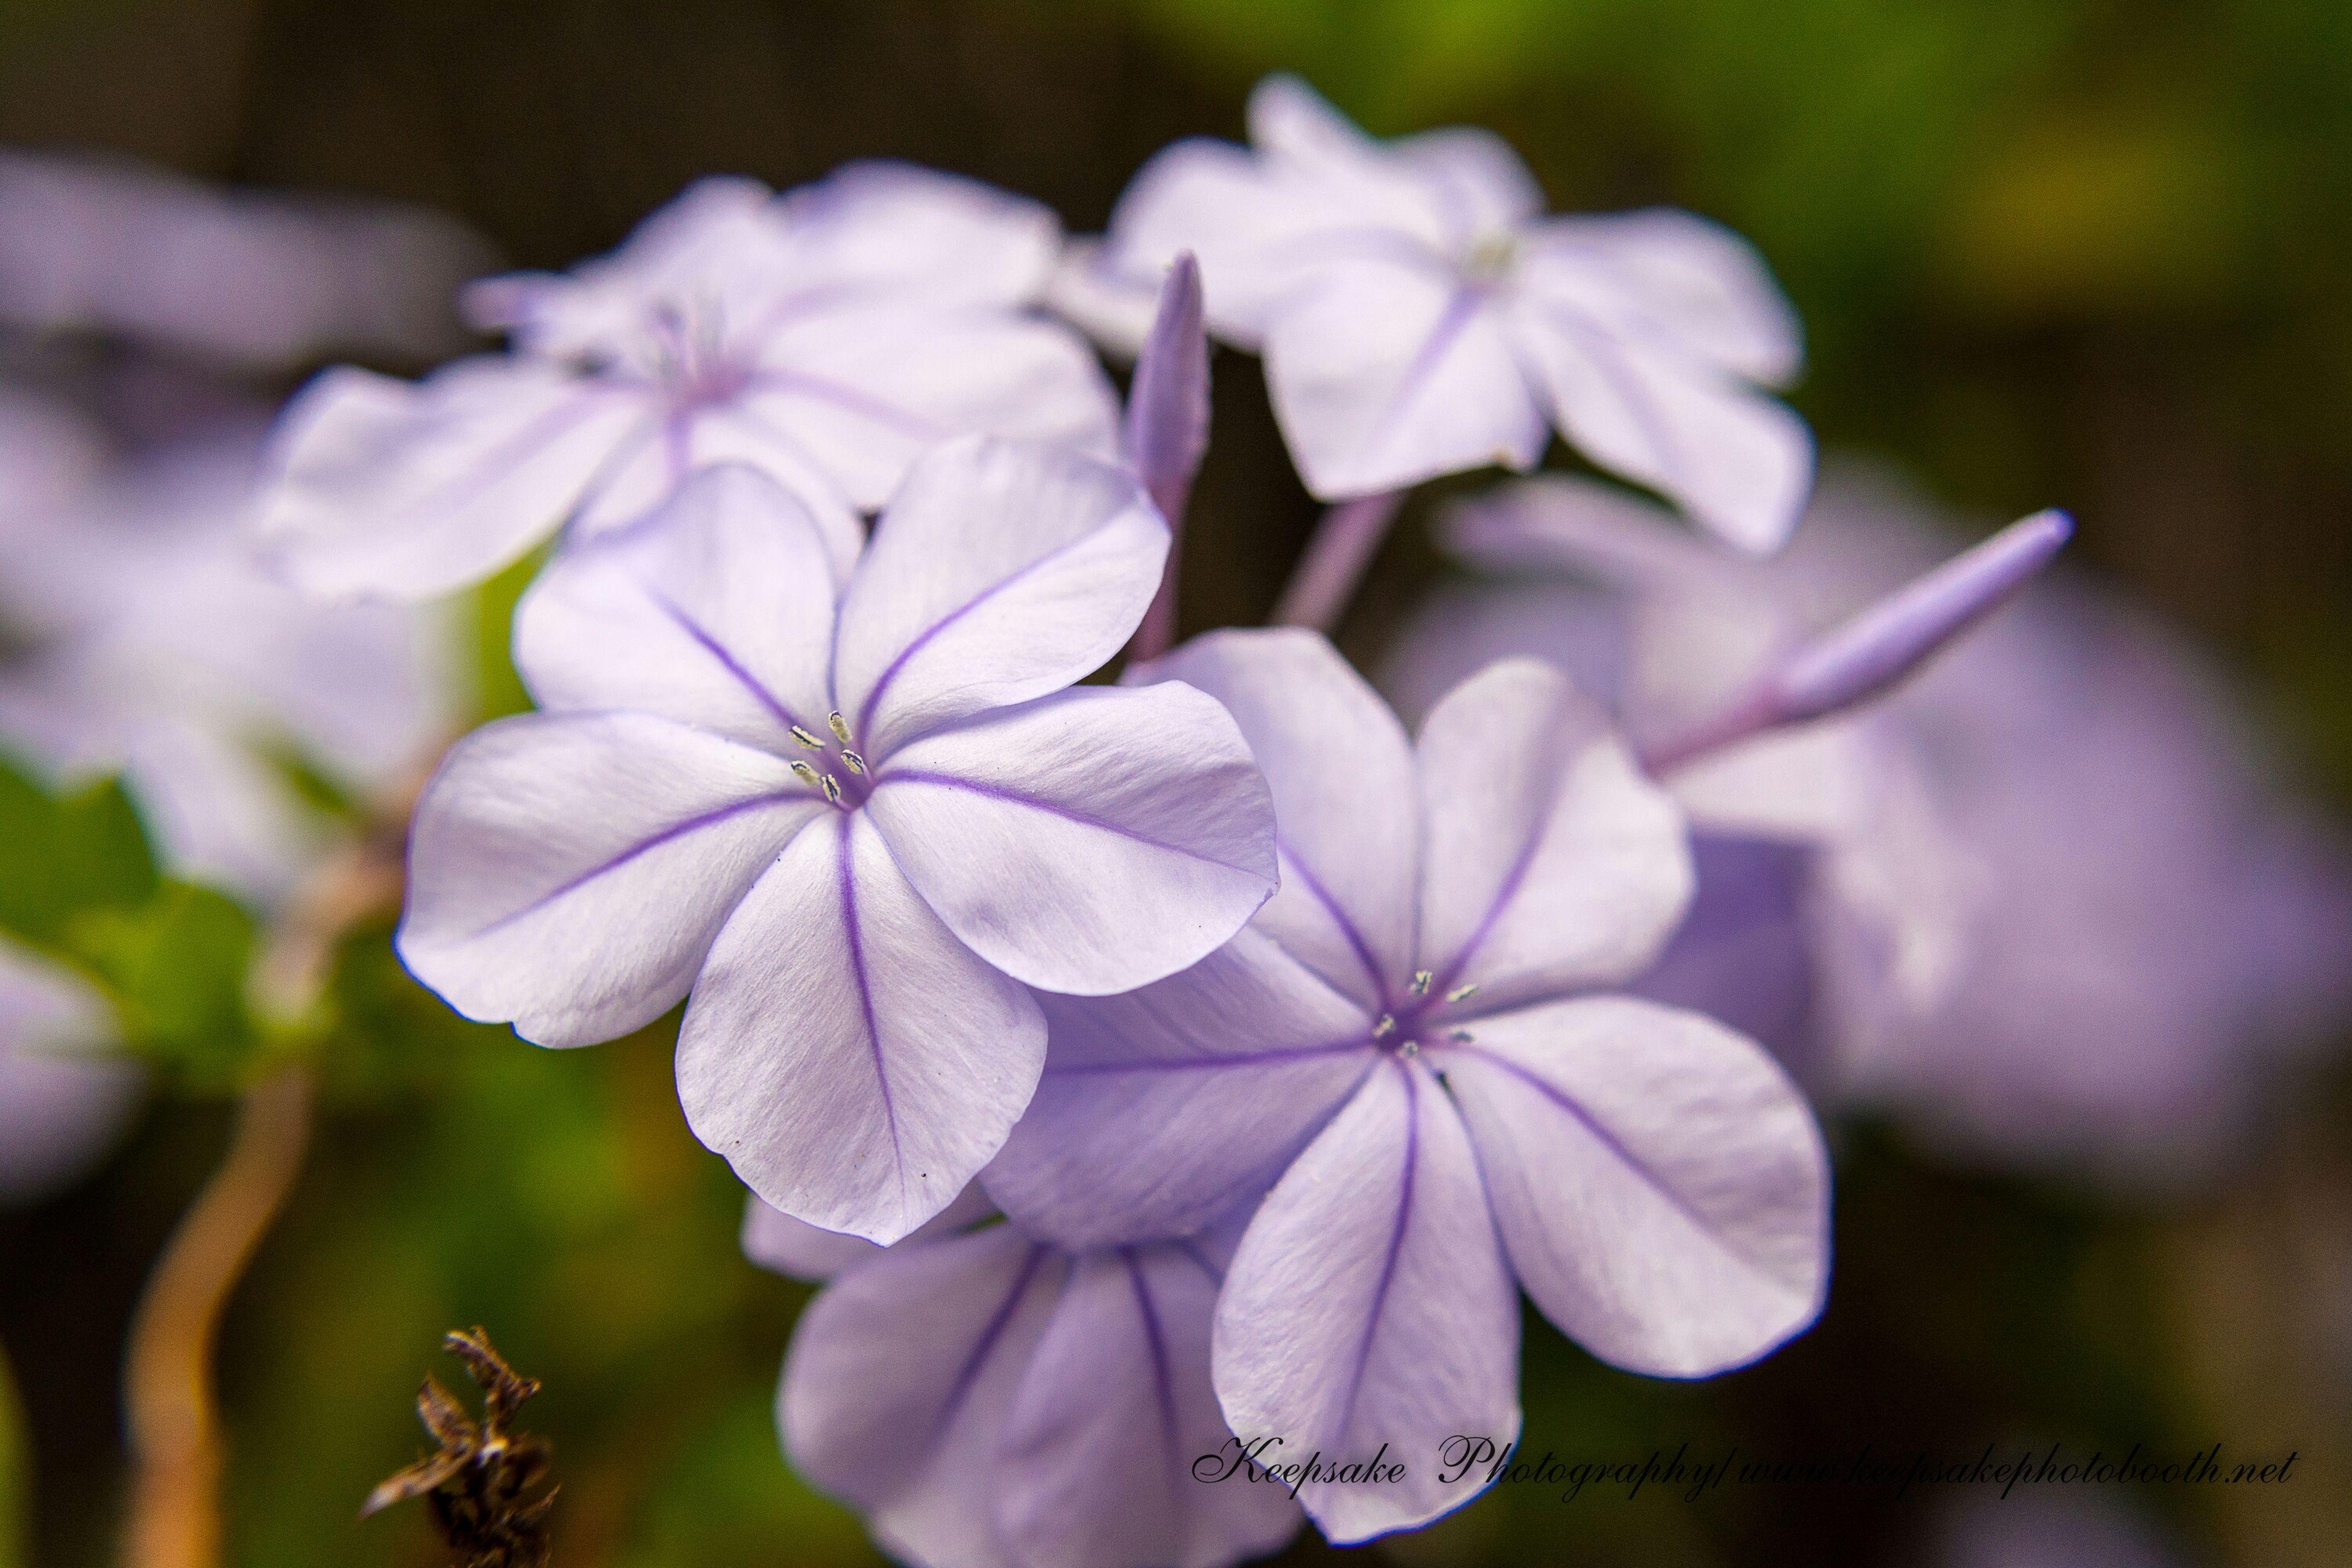 flower, petal, fragility, freshness, flower head, growth, focus on foreground, close-up, beauty in nature, nature, plant, blooming, in bloom, selective focus, day, outdoors, blossom, stem, no people, botany